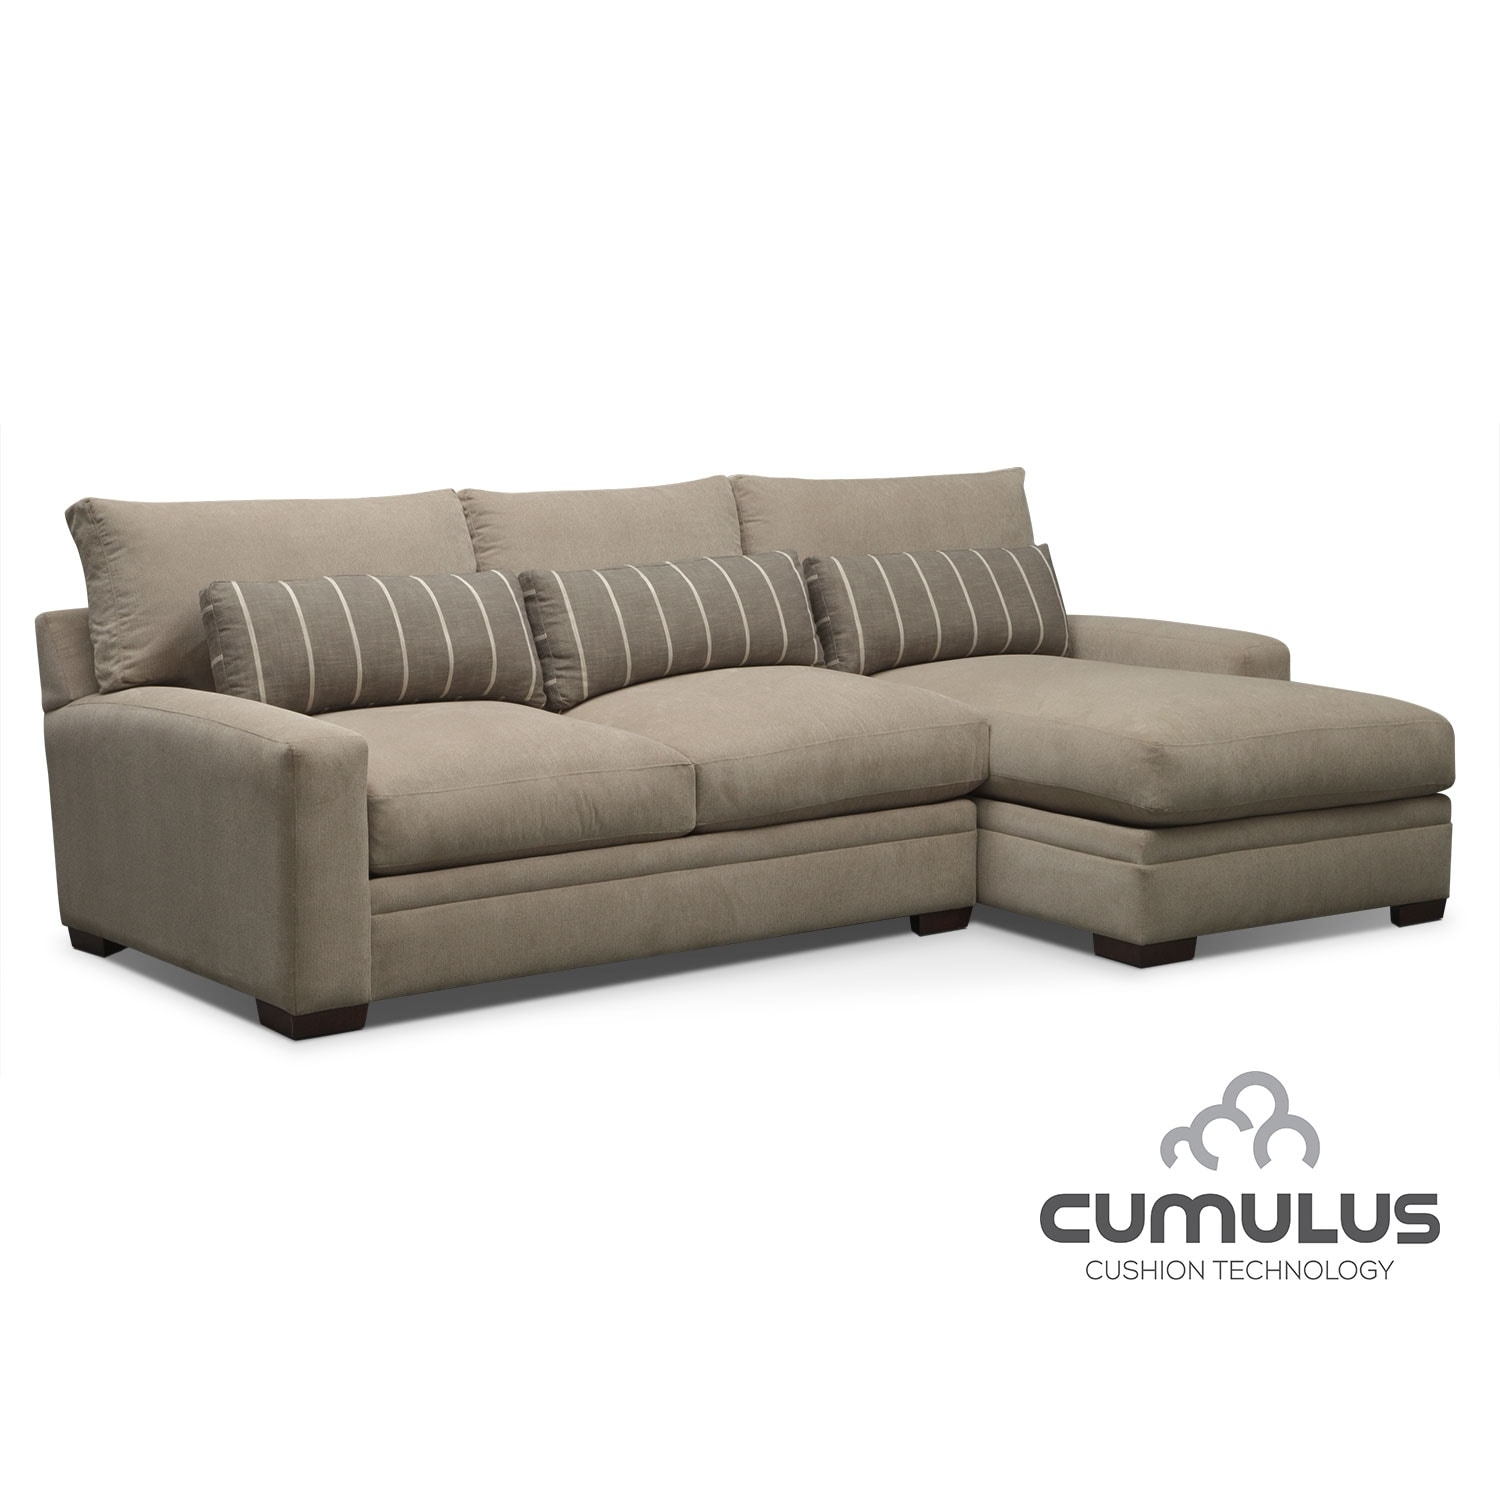 Cumulus cushion technology by kroehler value city furniture for Flexsteel 4 piece sectional sofa with right arm facing chaise in brown